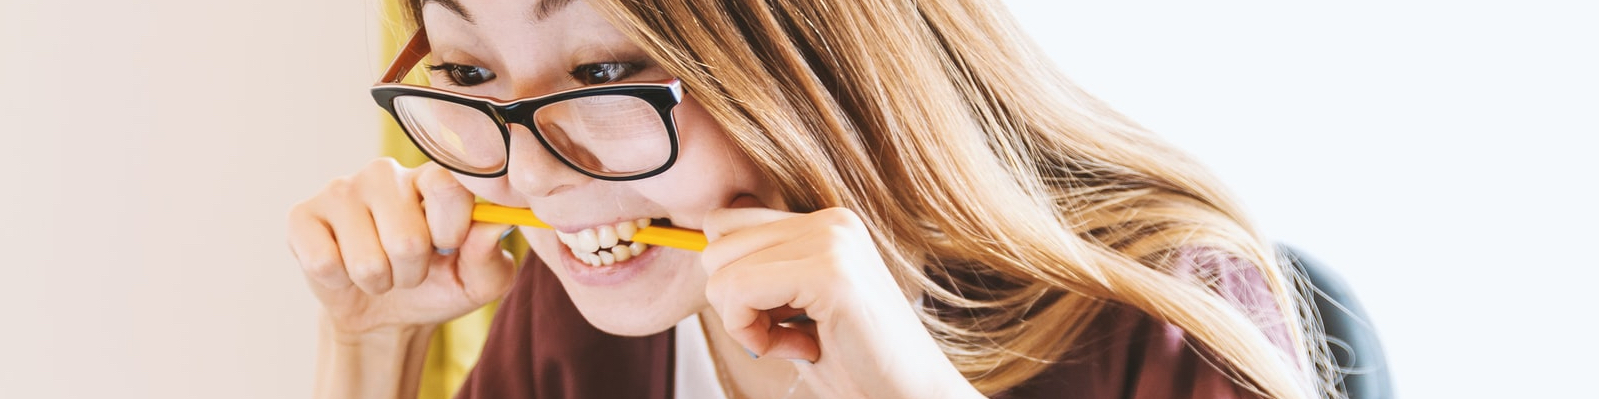 photo of a woman with glasses looking frustrated and biting on a pencil